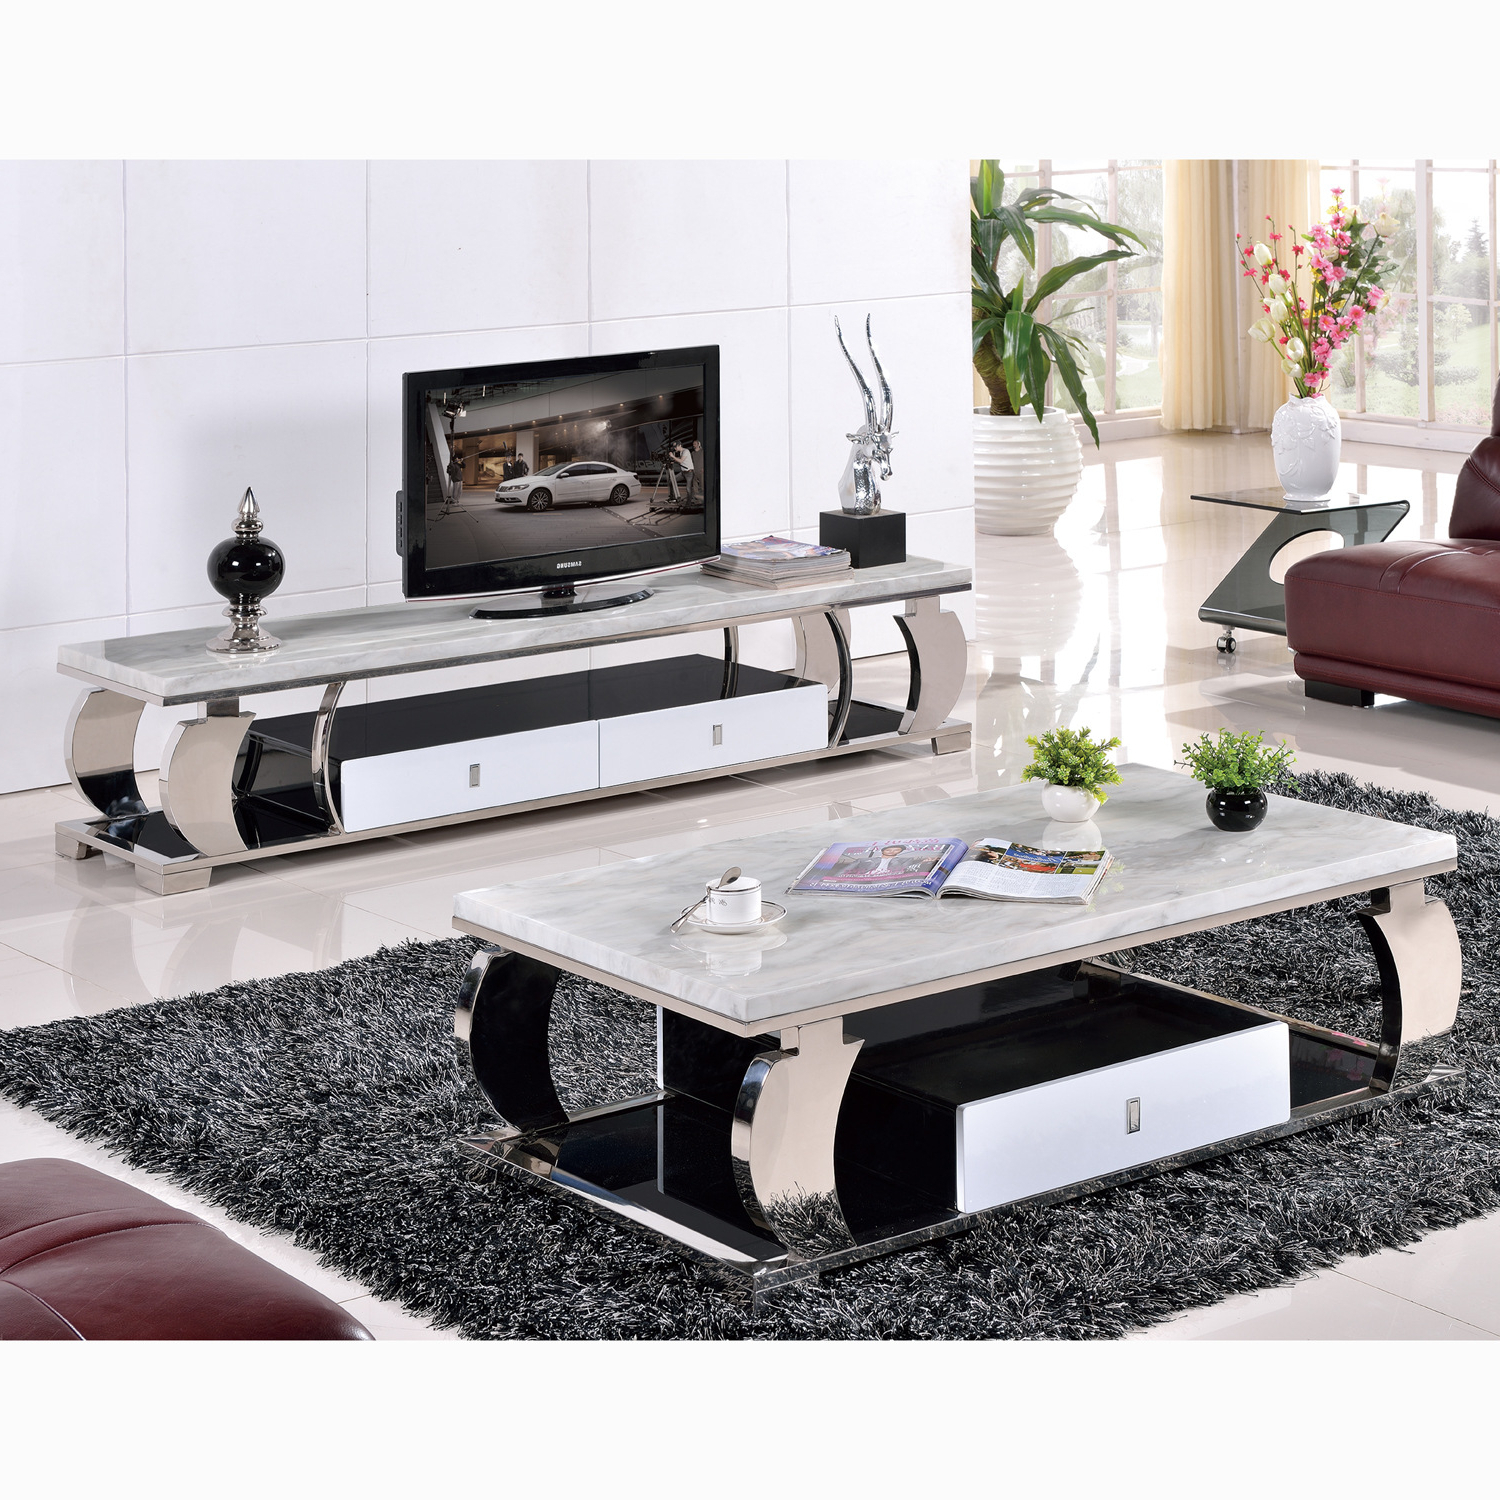 Most Up To Date Tv Unit And Coffee Table Sets With Regard To Led Tv Stand Designs Console Table Set With Mirror Coffee Sets (View 12 of 20)